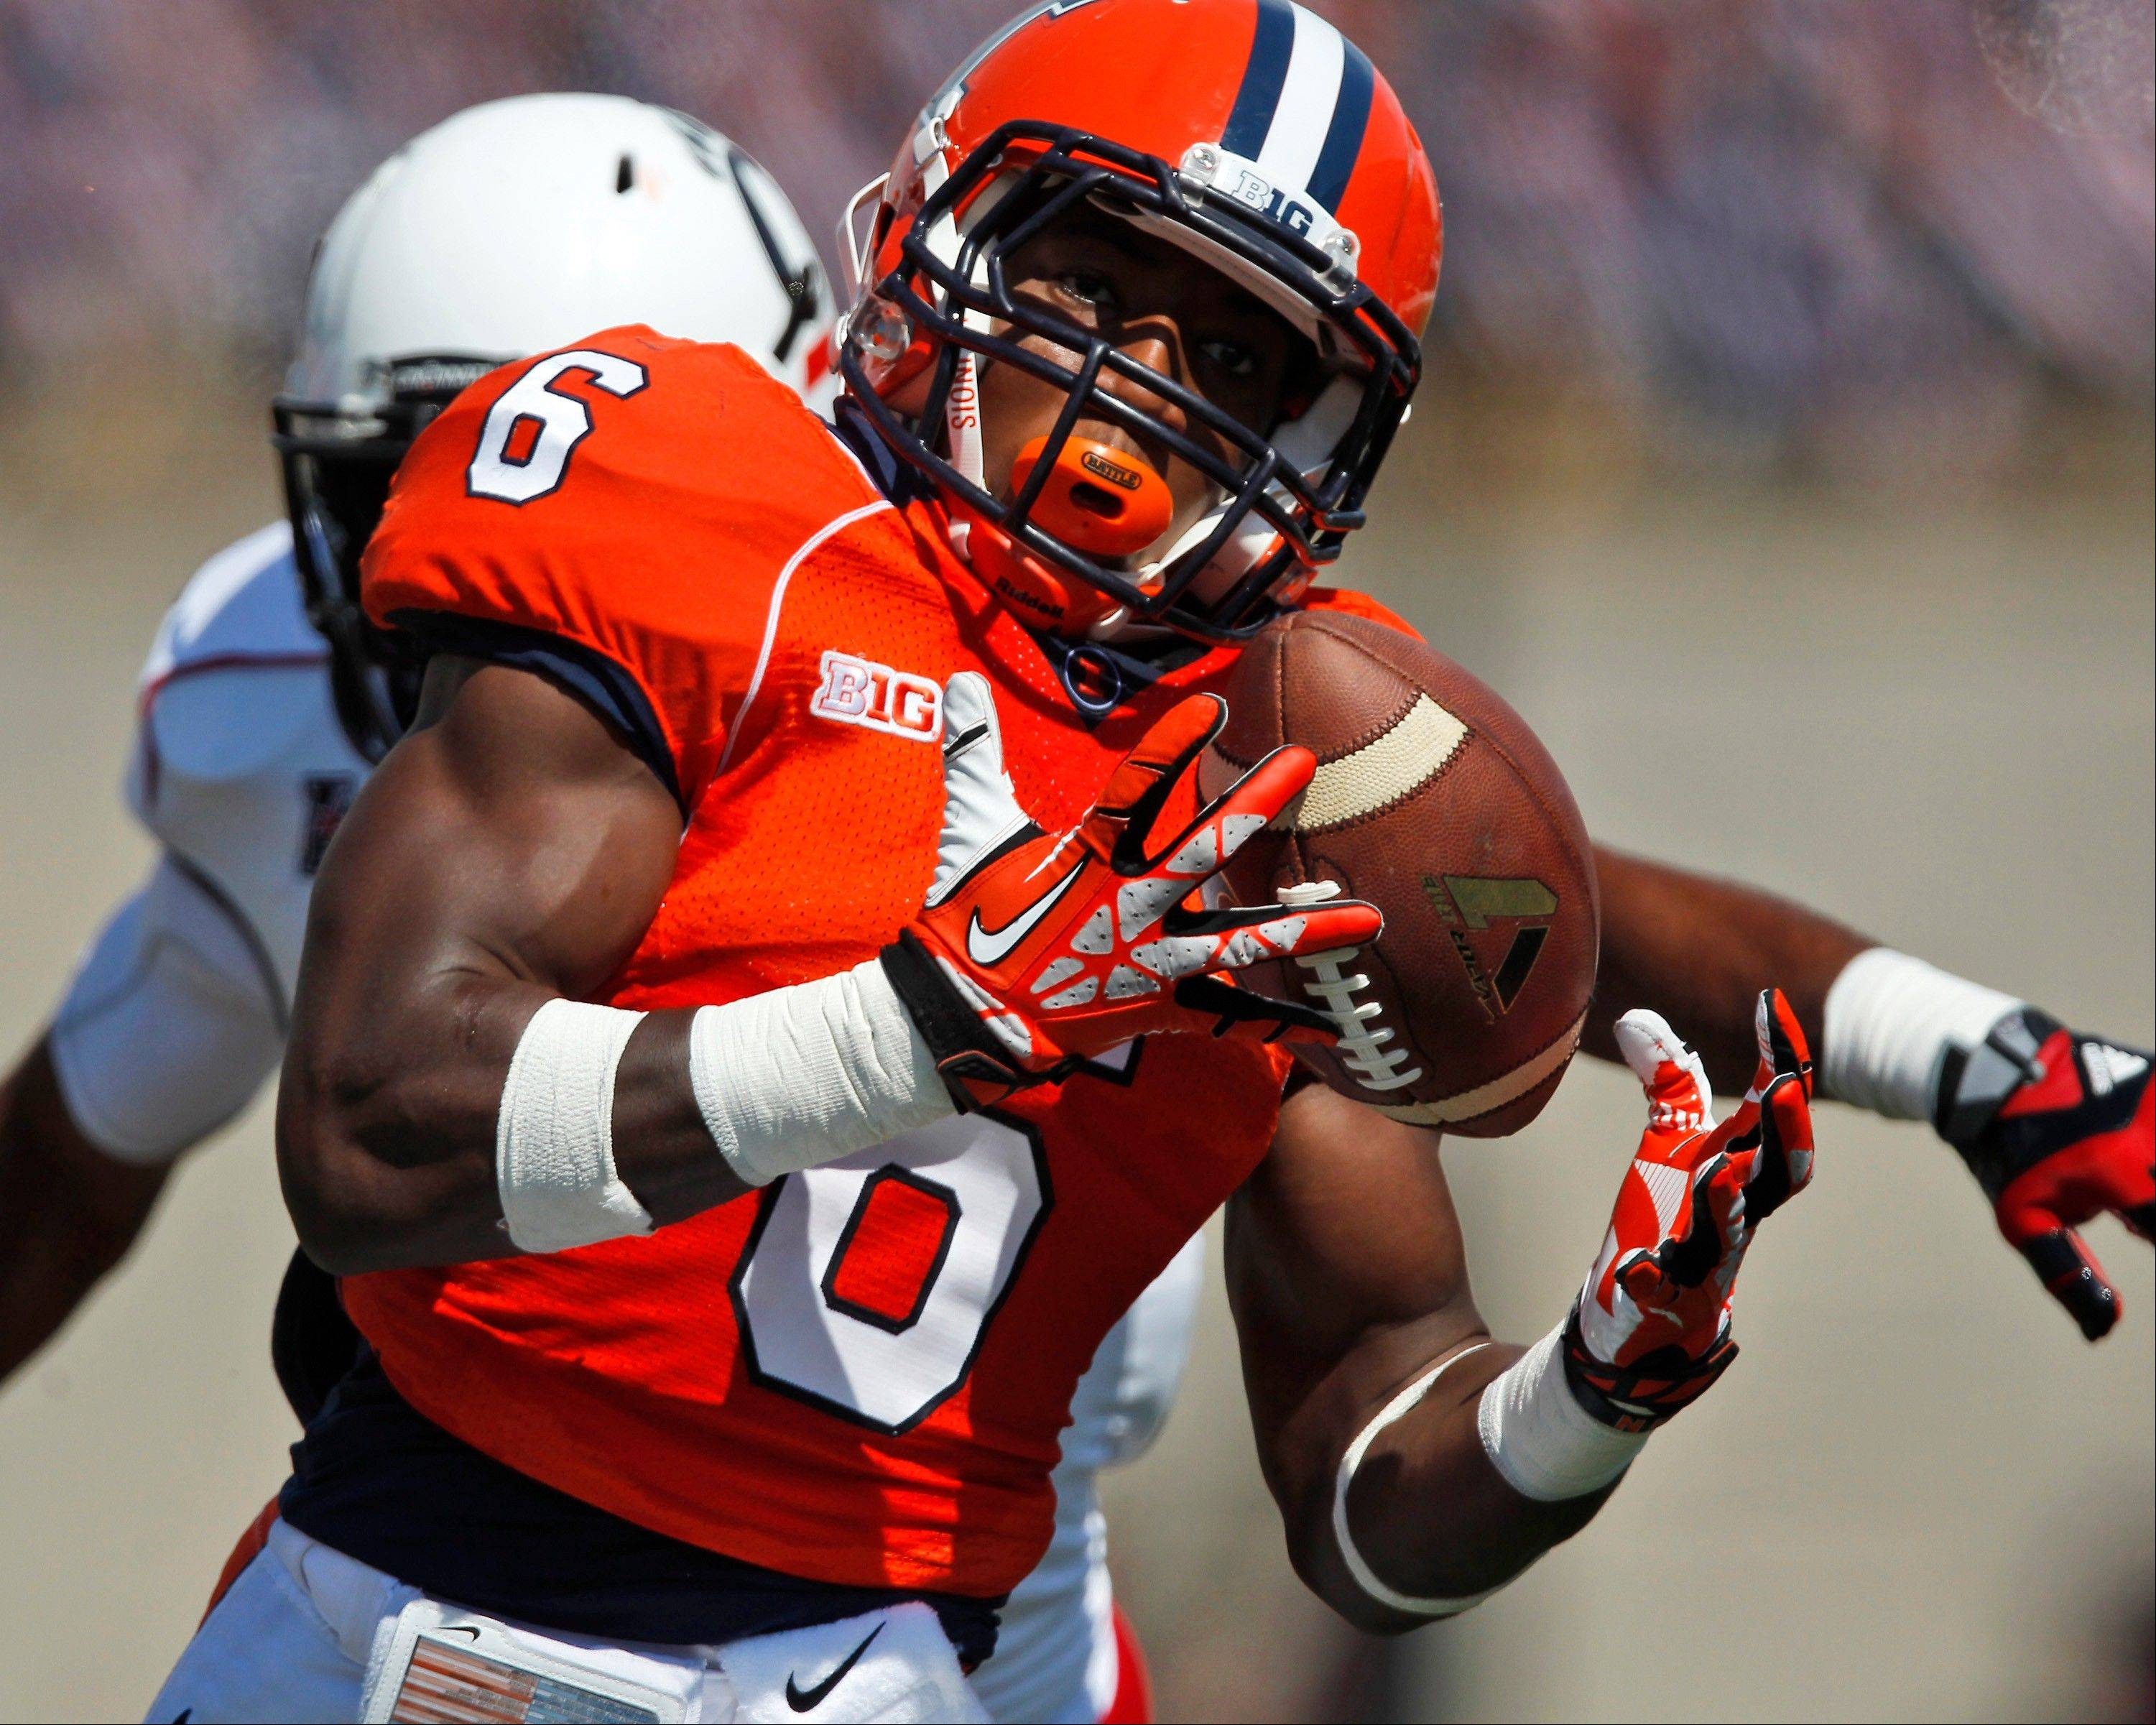 Illinois stuns Cincinnati, 45-17